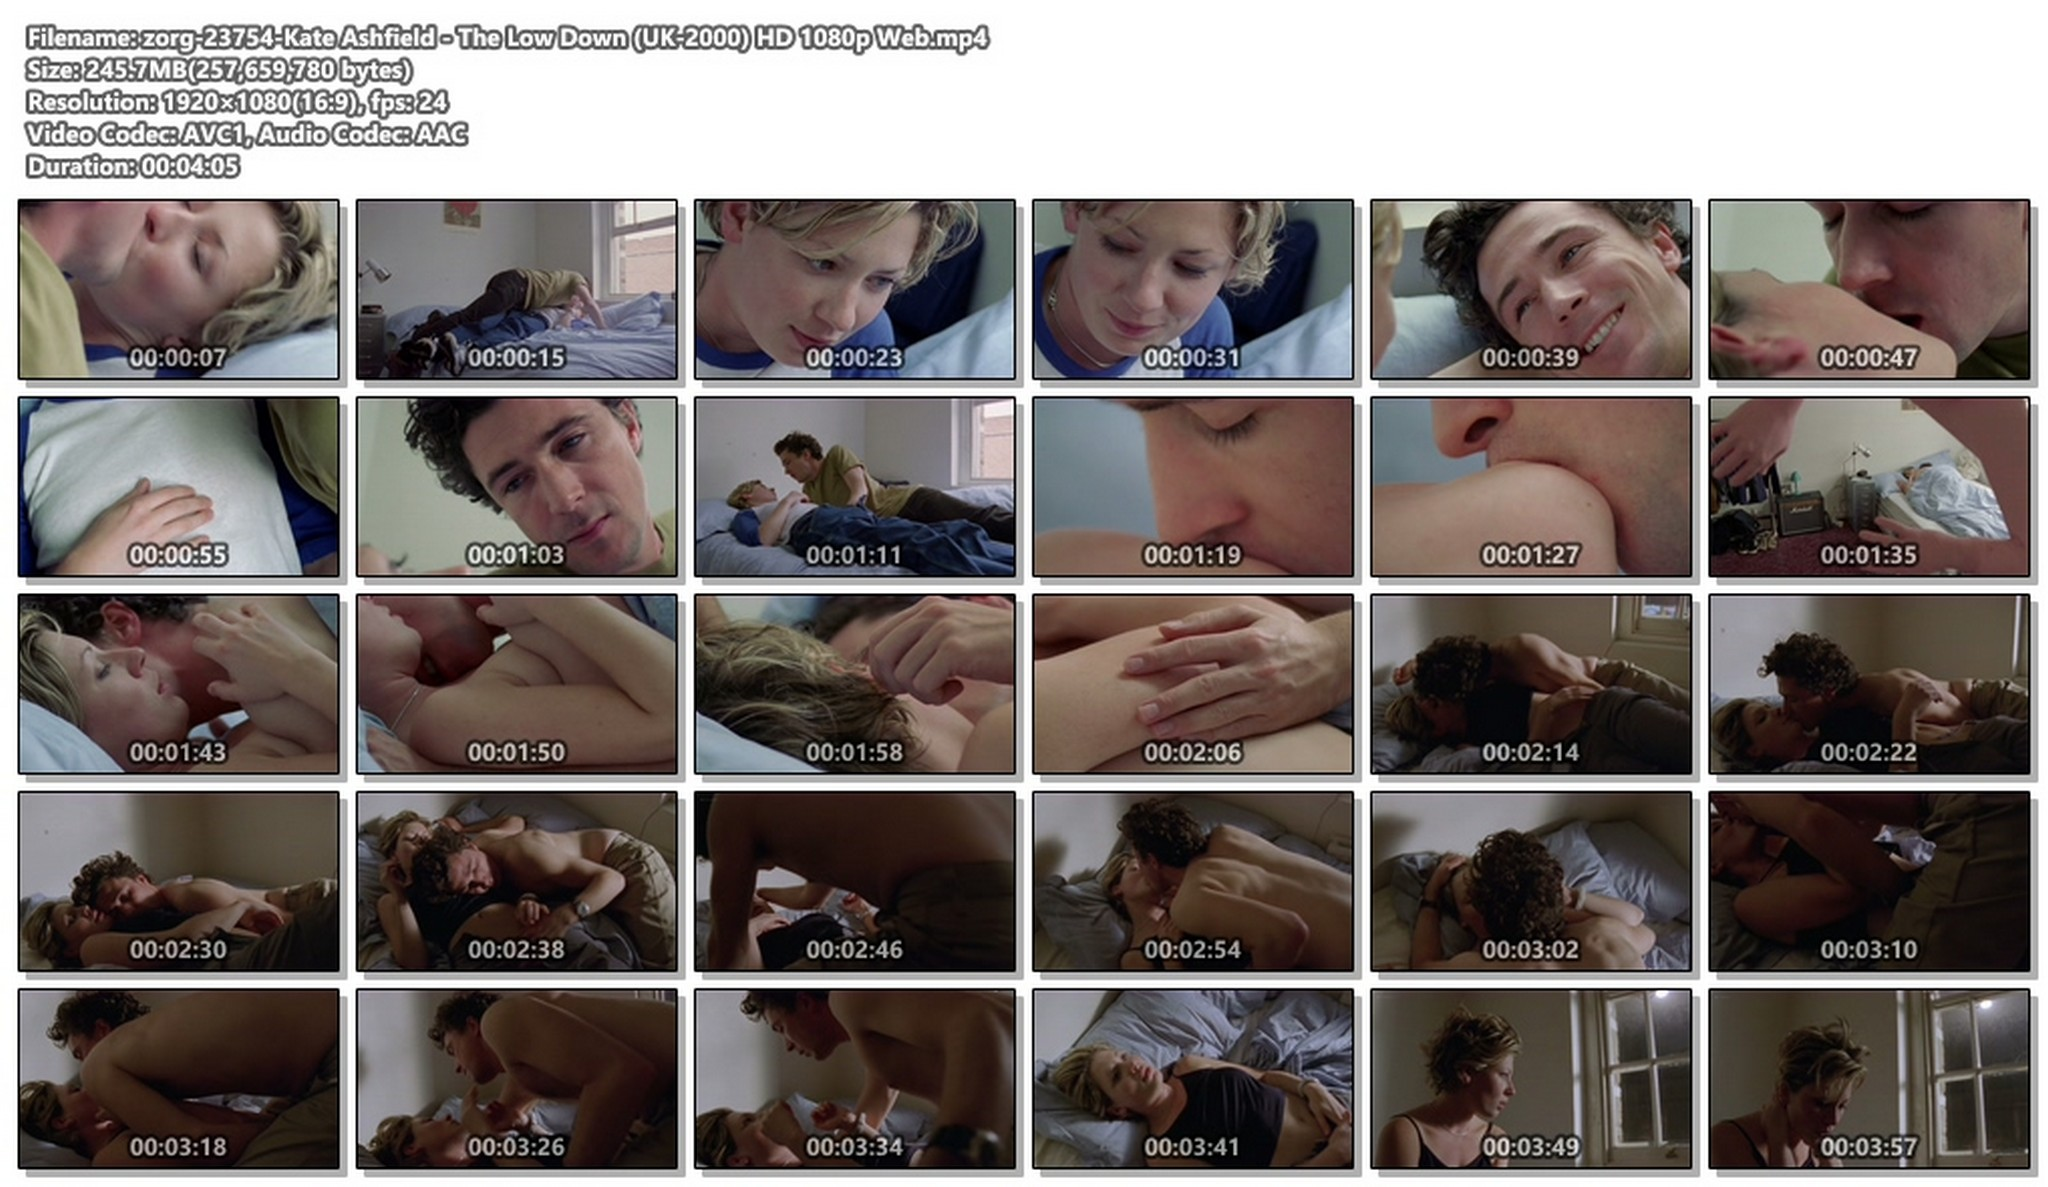 Kate Ashfield hot and some sex - The Low Down (UK-2000) HD 1080p Web (1)